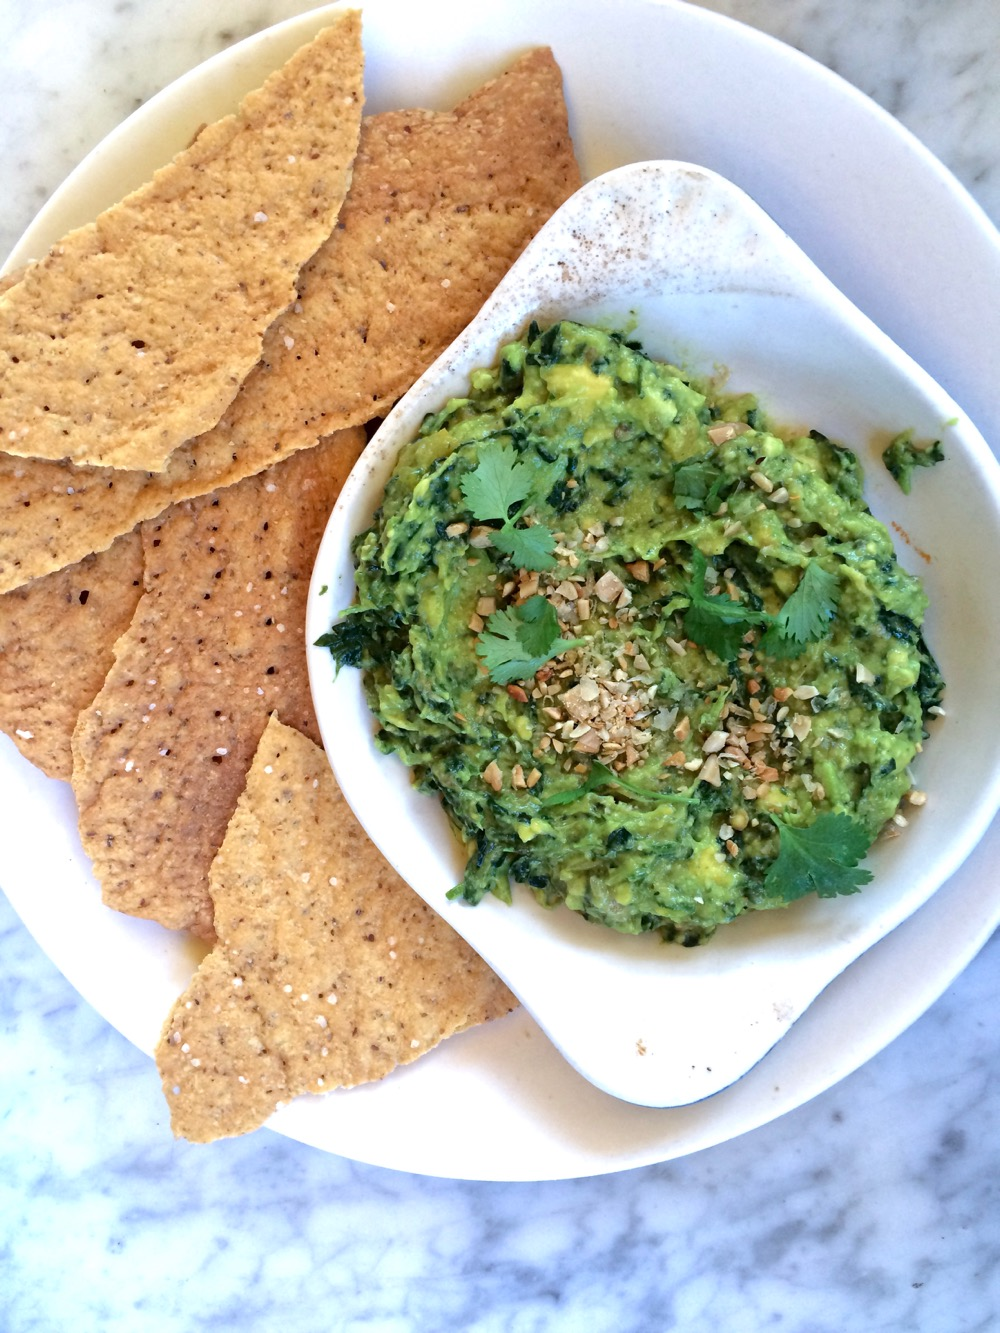 kale-guacamole-true-food-kitchen.jpg